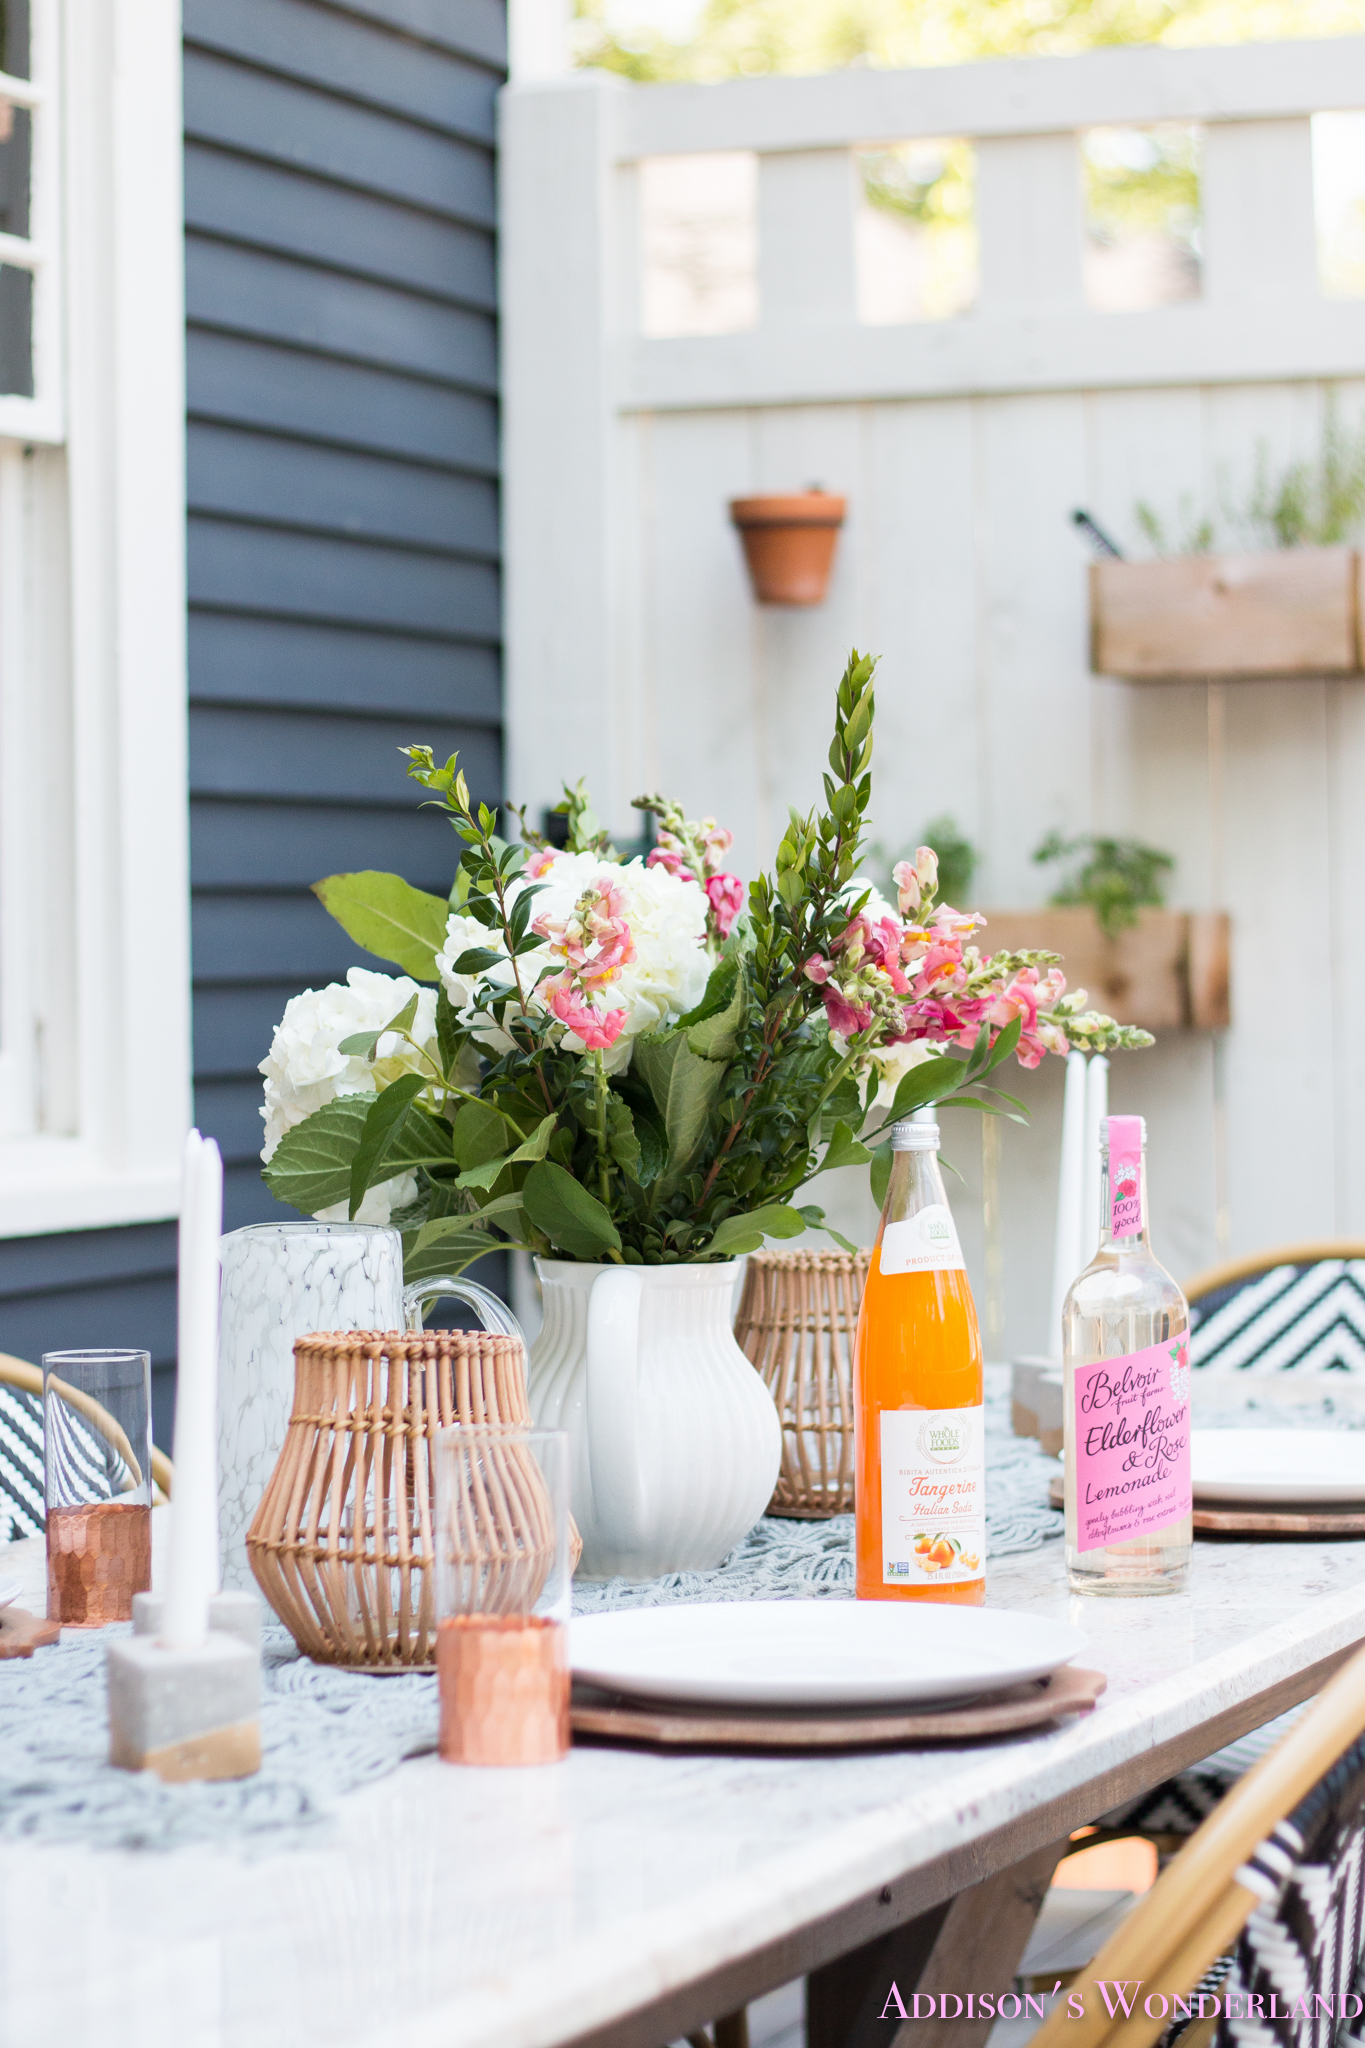 Outdoor Dining, Table Decor & the Cutest Bistro Chairs ... on Backyard Table Decor id=66204